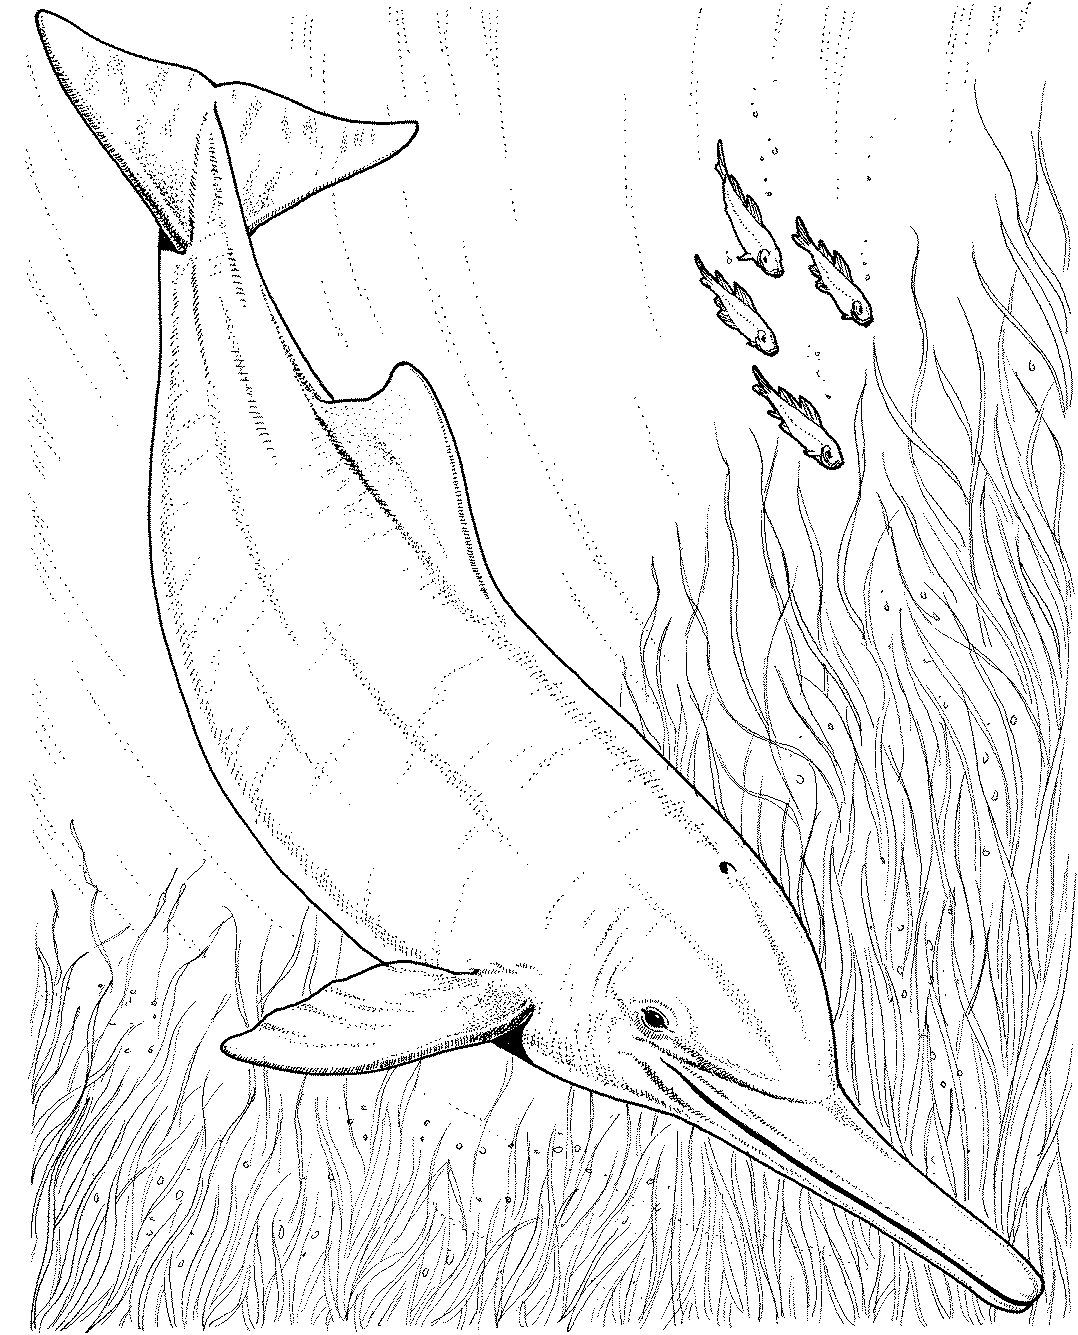 Coloring pages dolphins - Dolphins With The Big Board Coloring Pages For Kids Printable Dolphins Coloring Pages For Kids